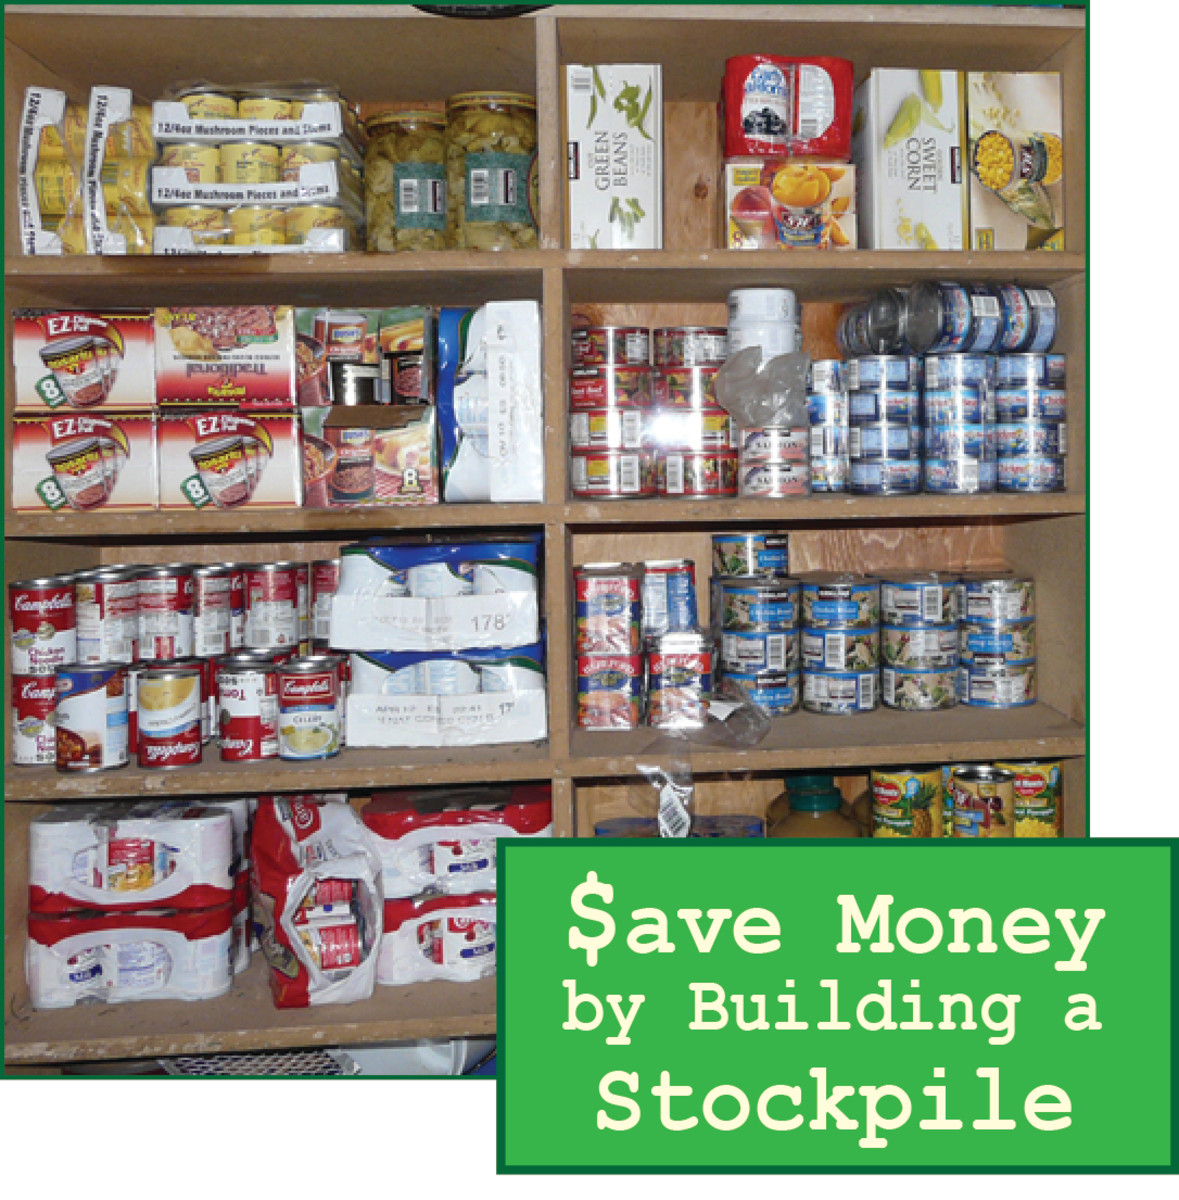 Frugal Living:  Stockpiling to Save Money and Be Prepared for Disaster